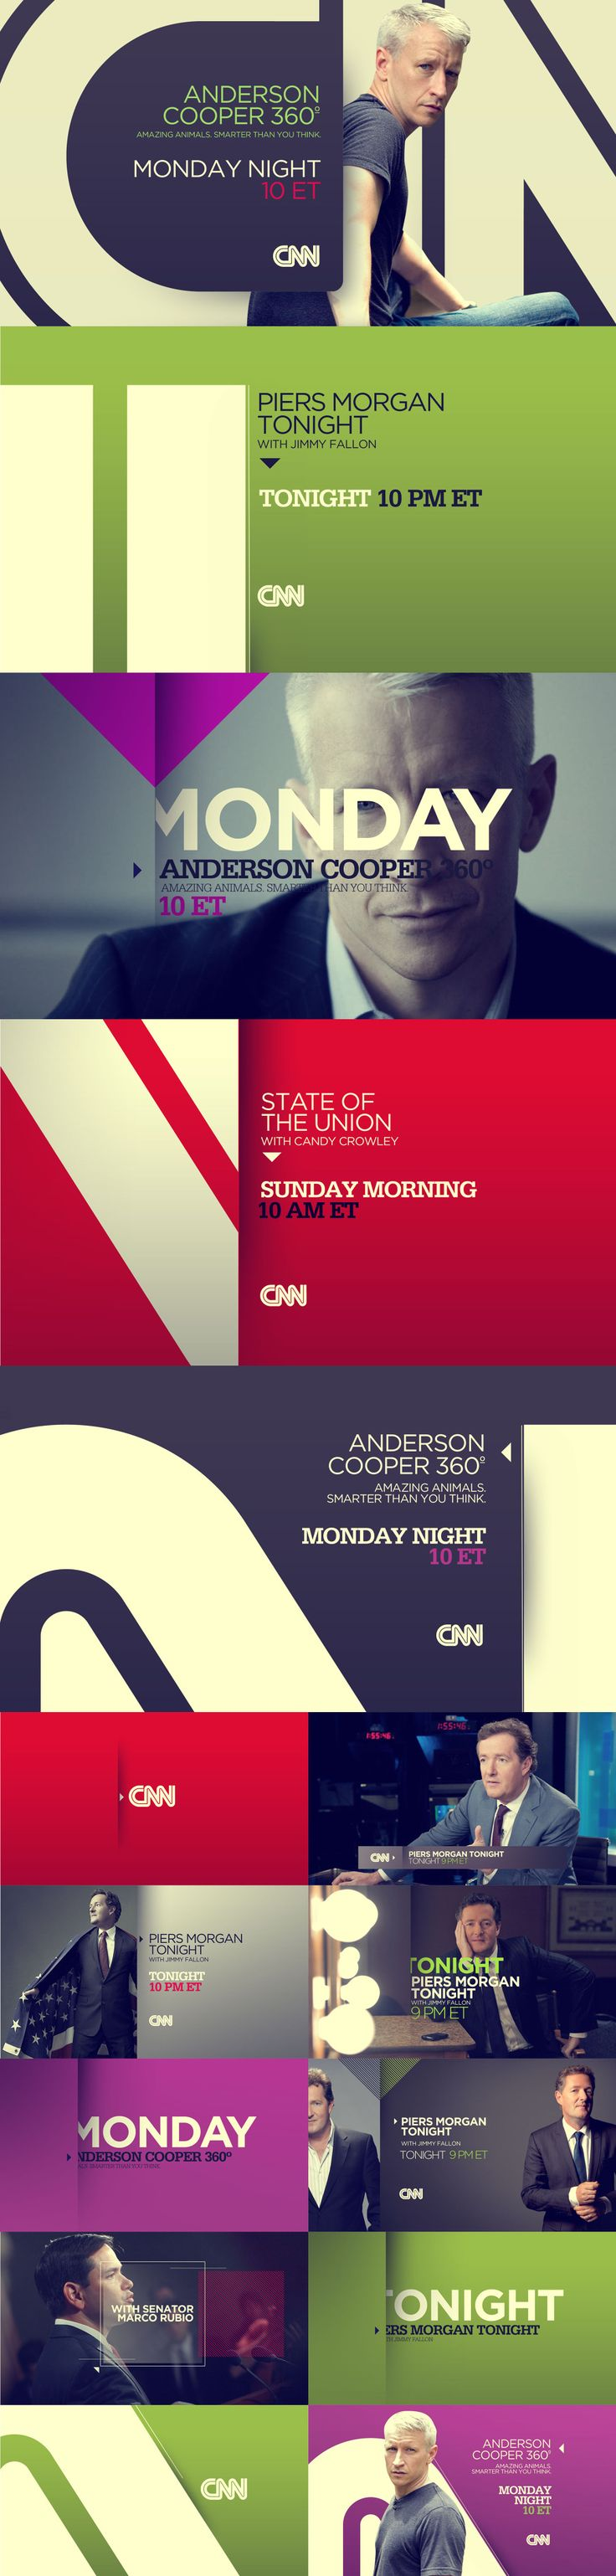 on air channel branding pitch for cnn.